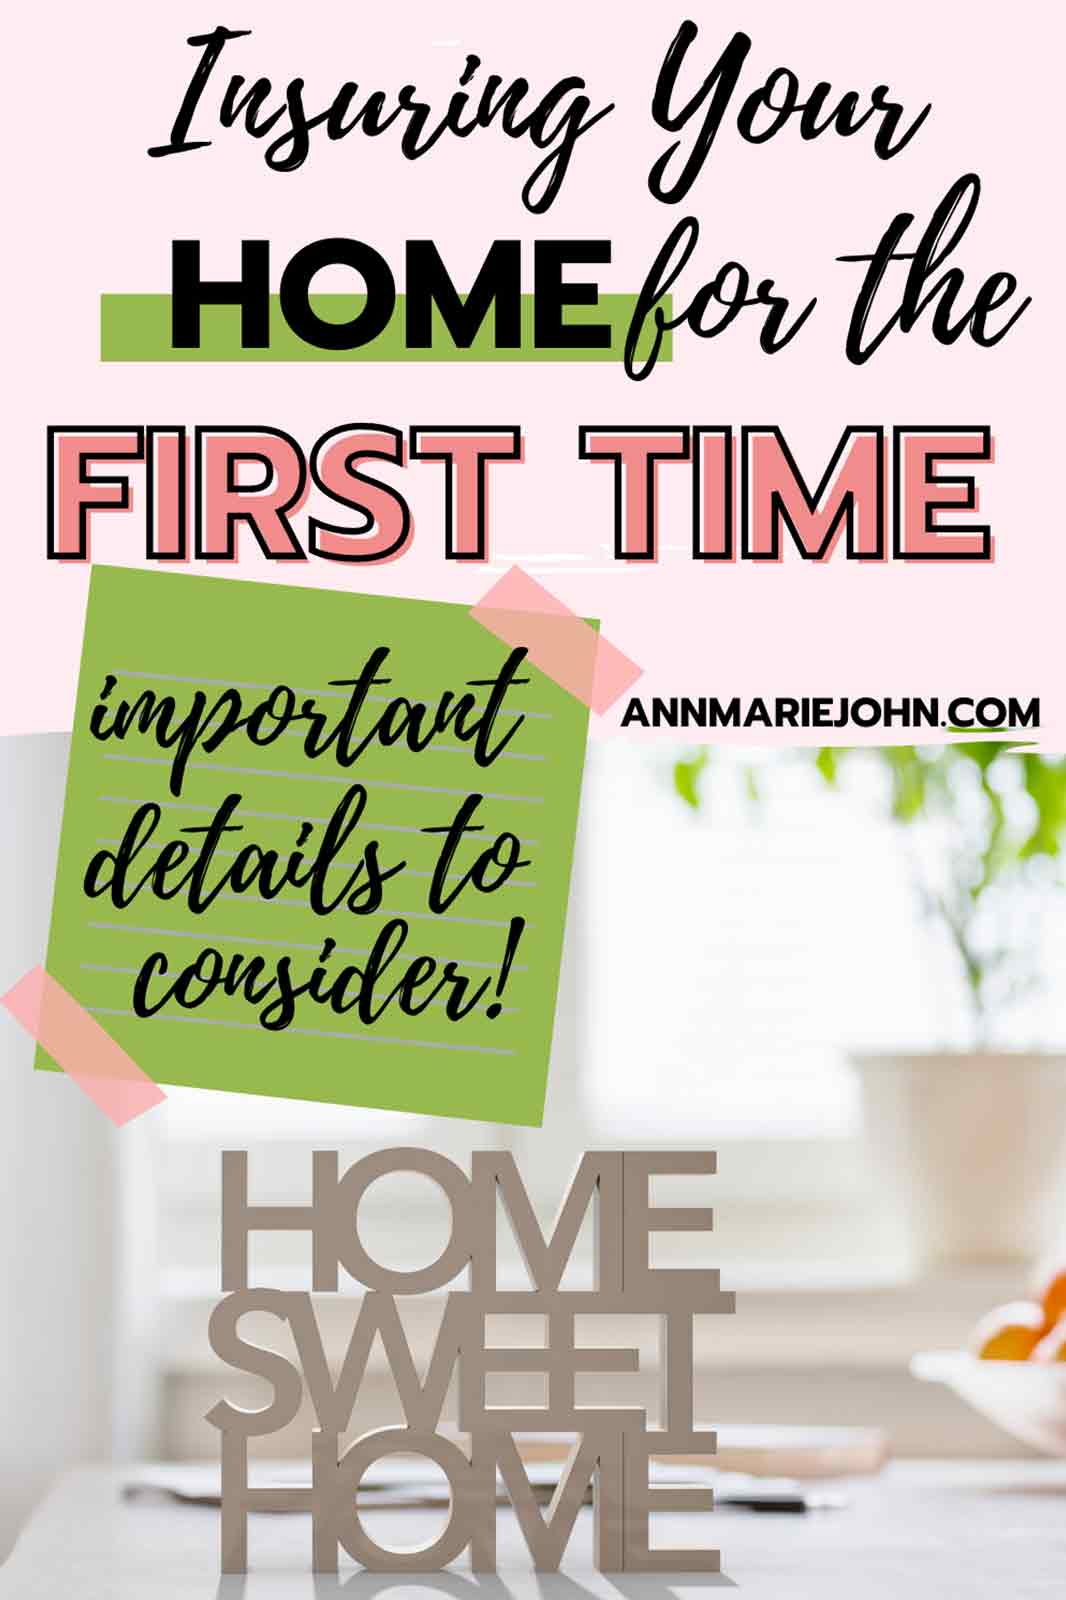 Insuring Your Home For The First Time